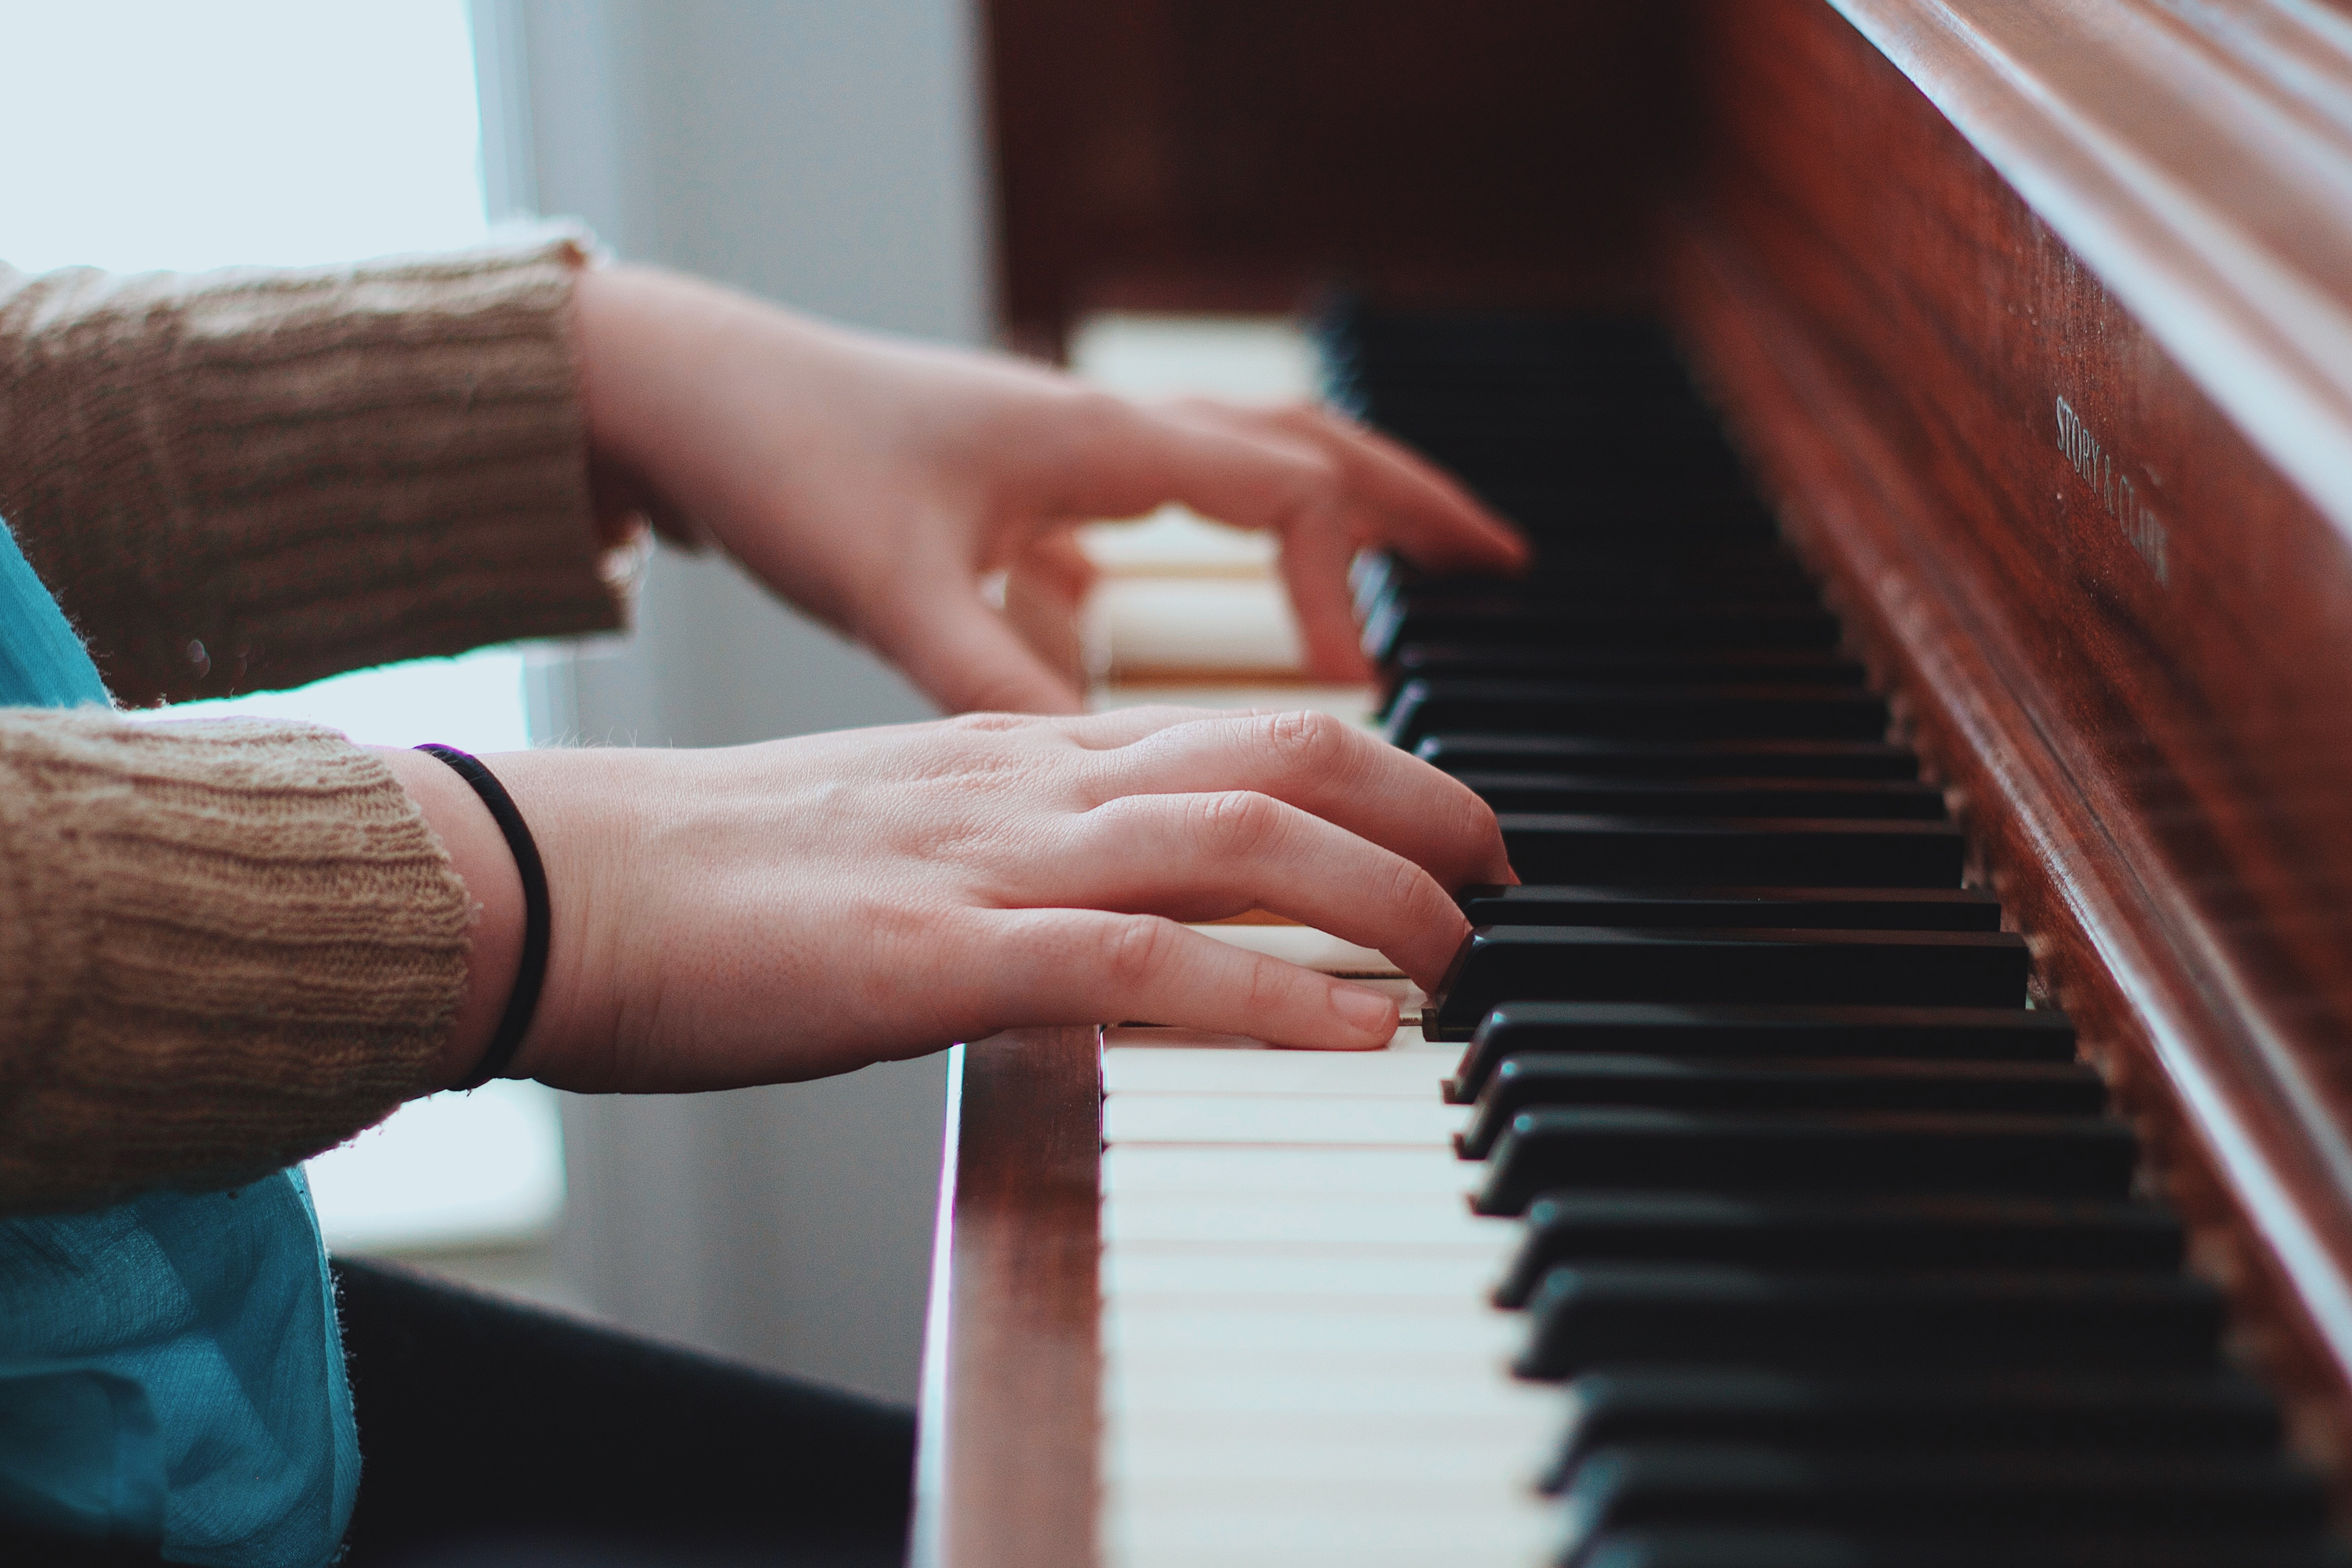 Incorporating improvisation into your piano lesson